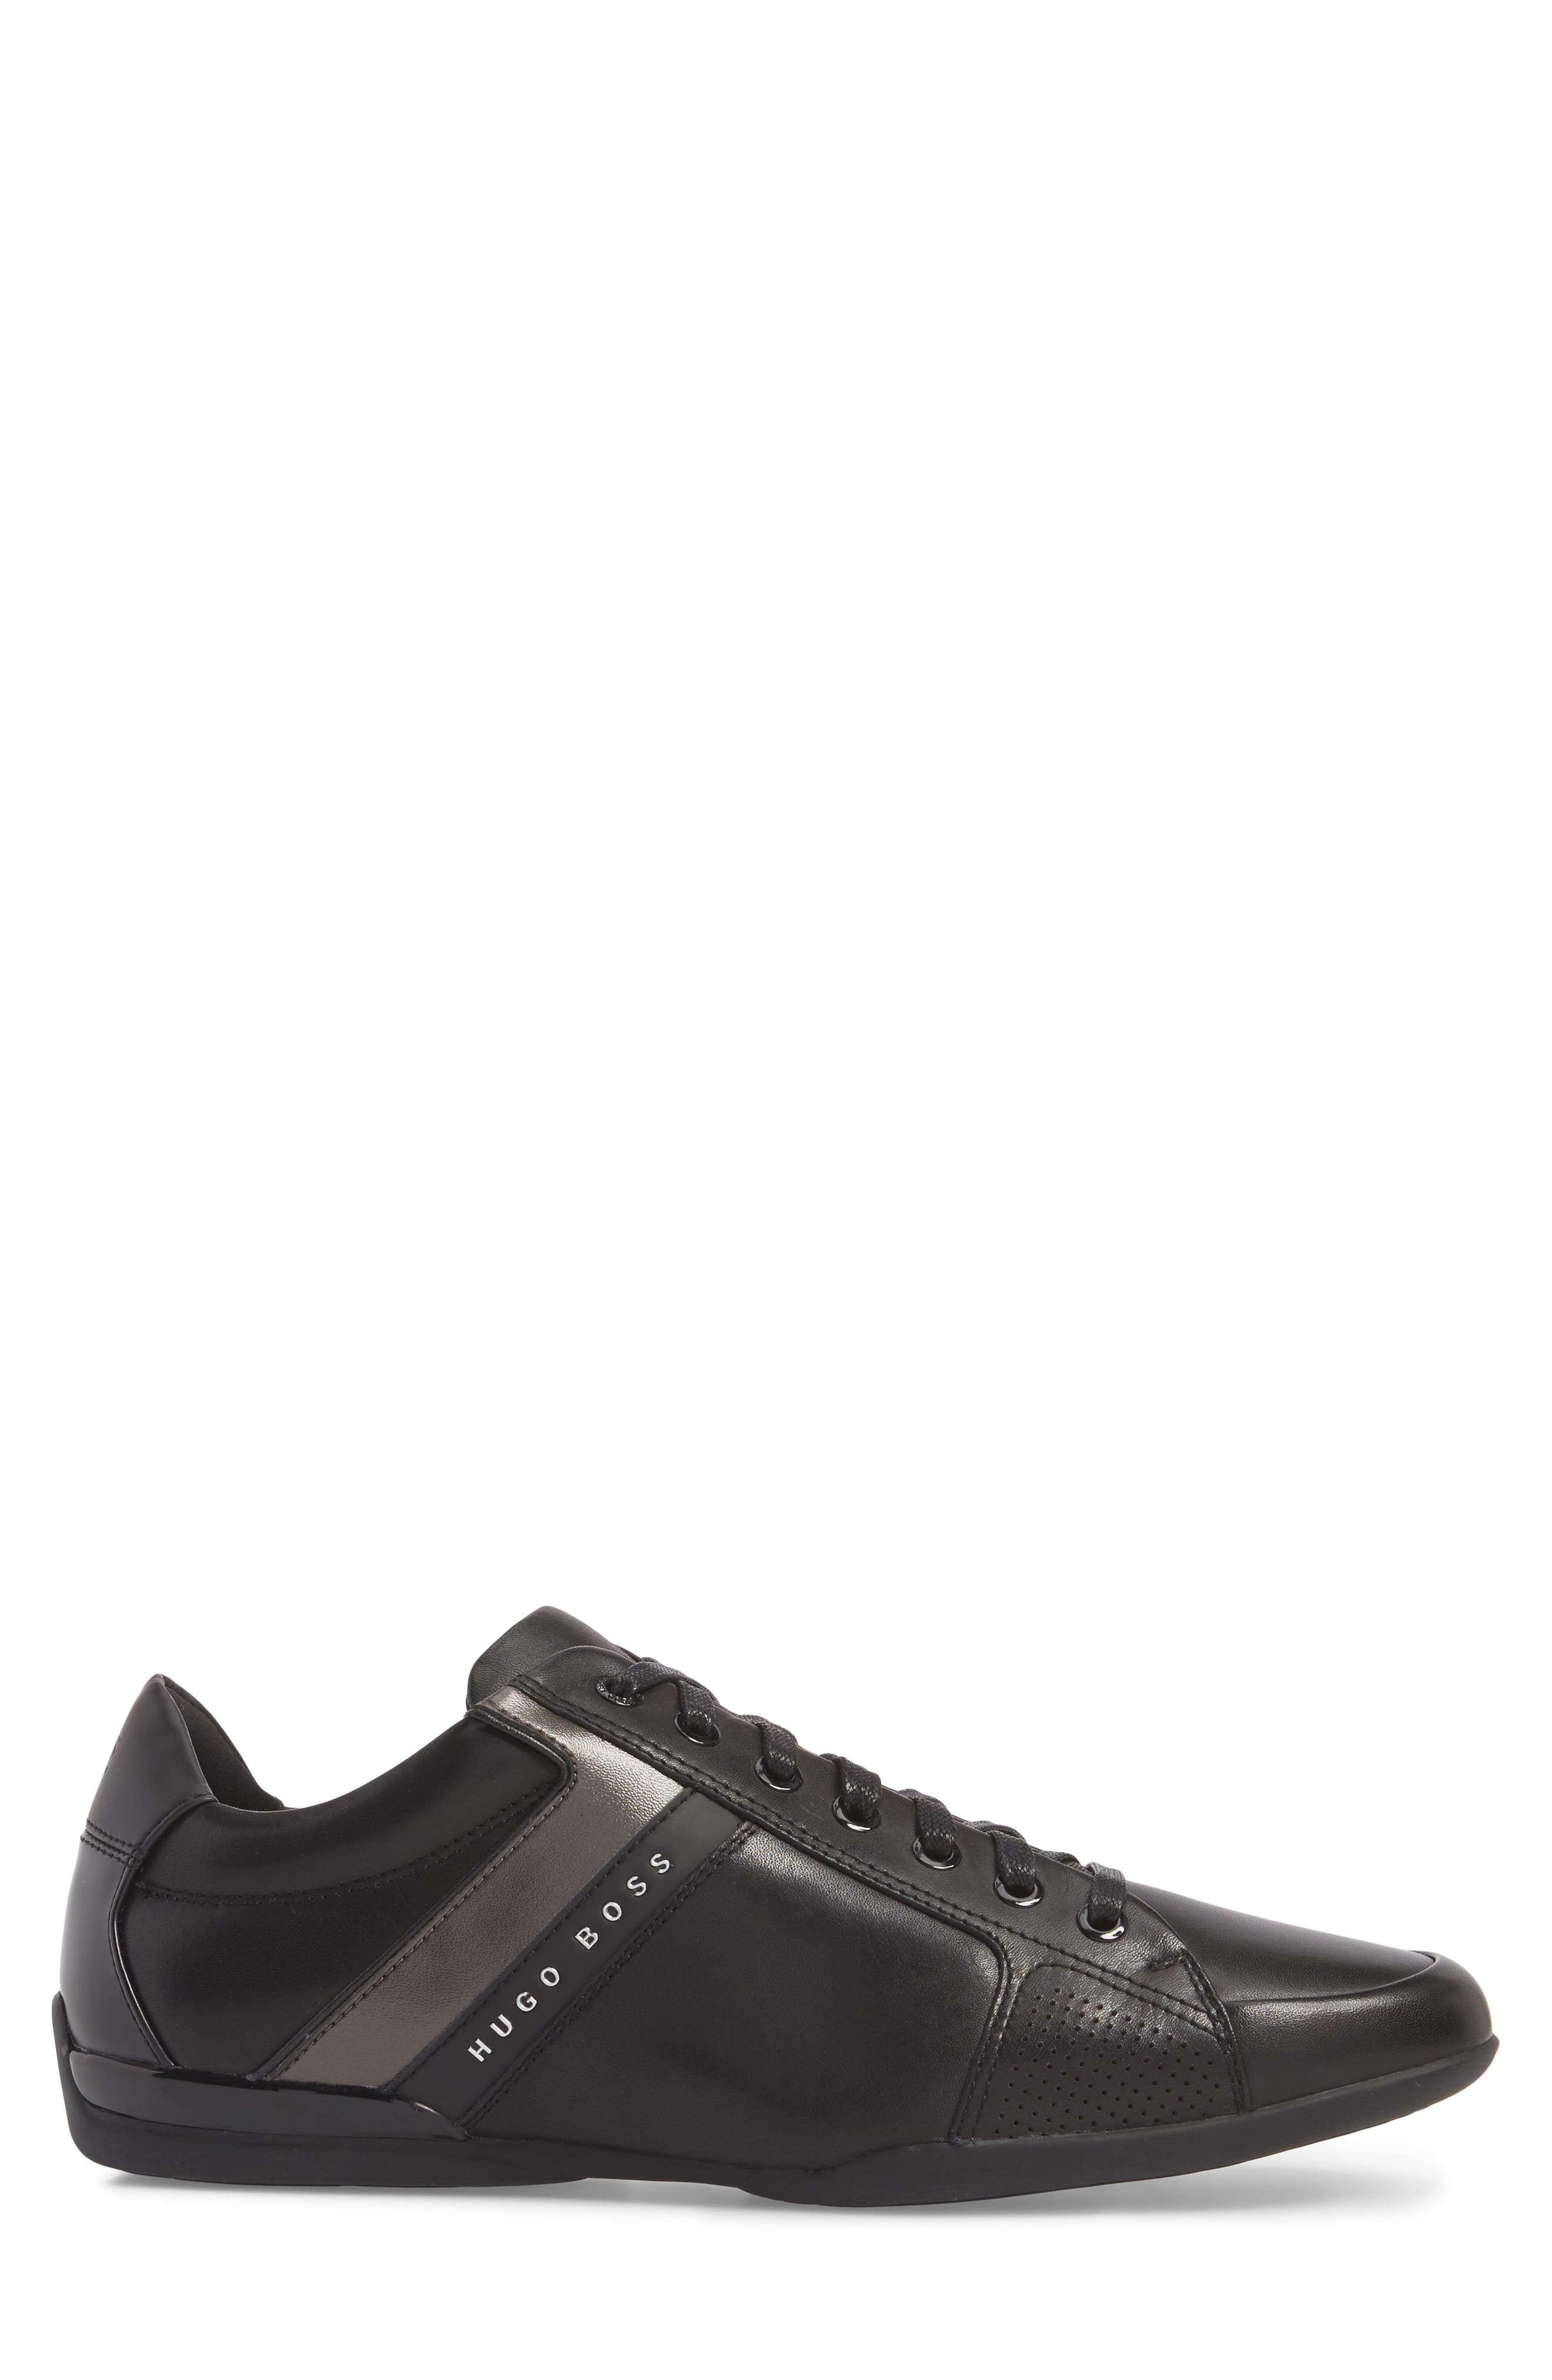 Space Lowp Lux Sneaker,                             Alternate thumbnail 3, color,                             BLACK LEATHER